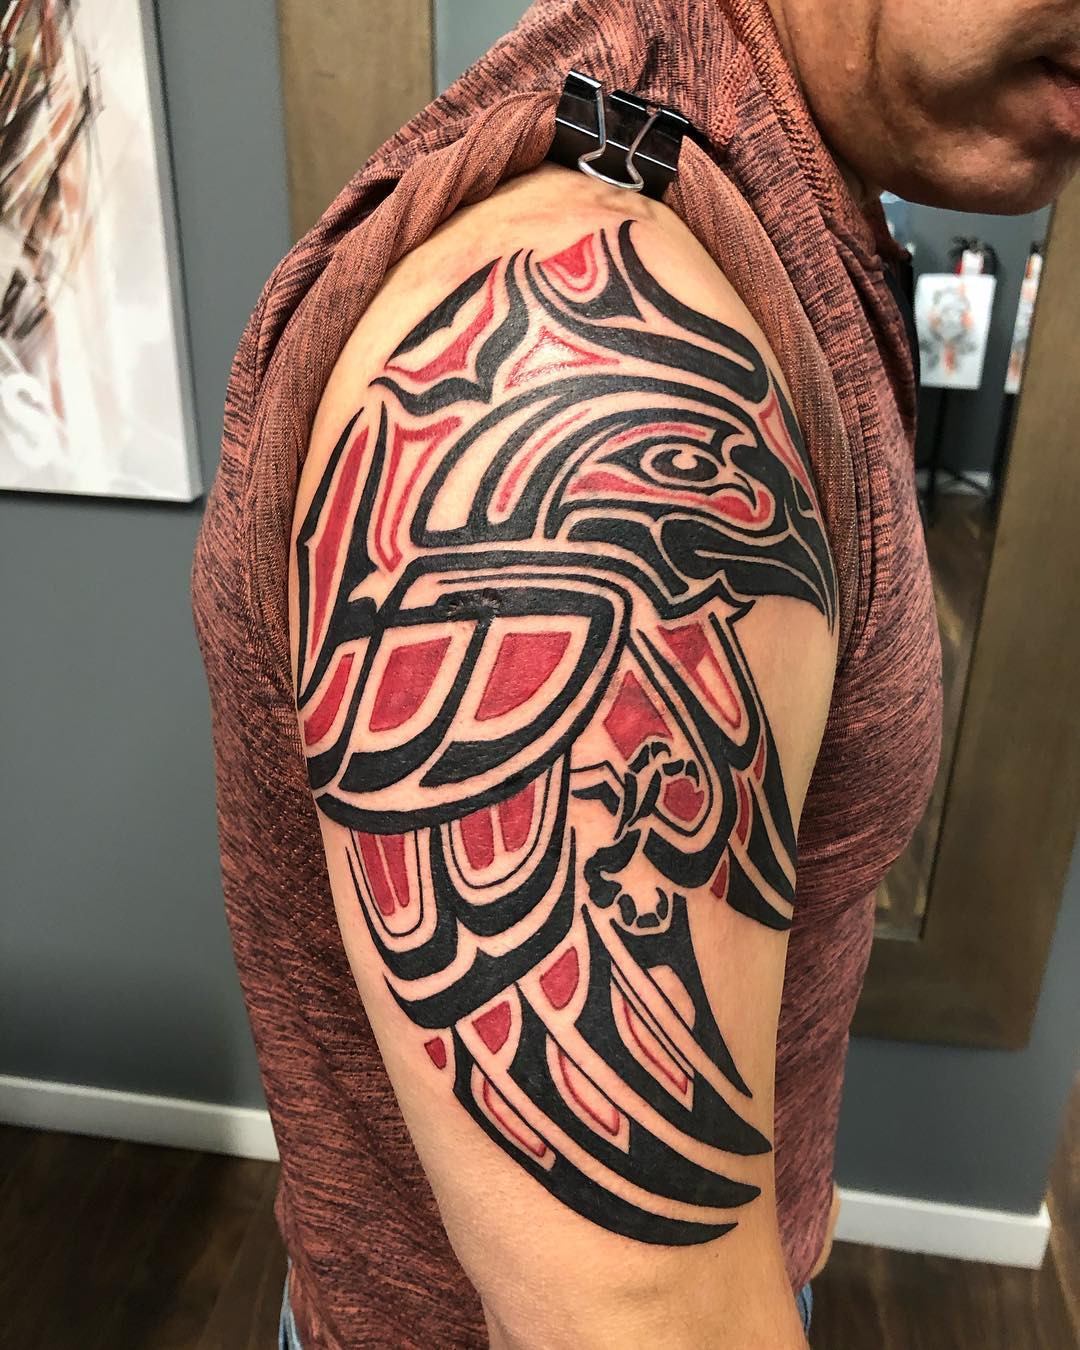 52 Tribal Tattoo Designs for Men & Women,types of tribal tattoos,simple tribal tattoos,small tribal tattoos,tribal tattoos sleeve